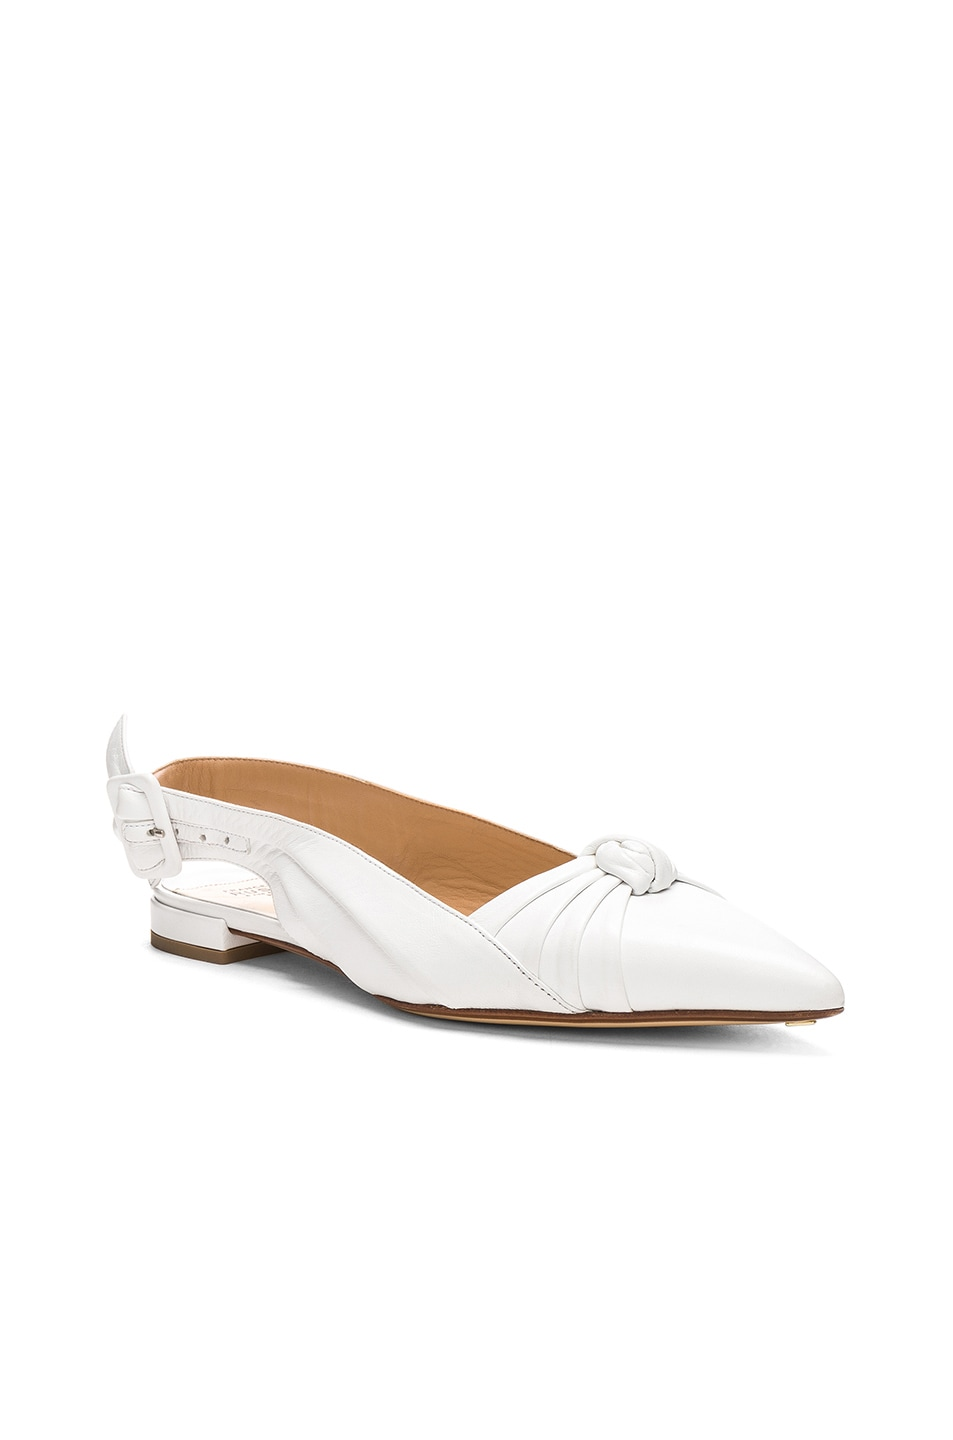 Image 2 of FRANCESCO RUSSO Slingback Flats in White